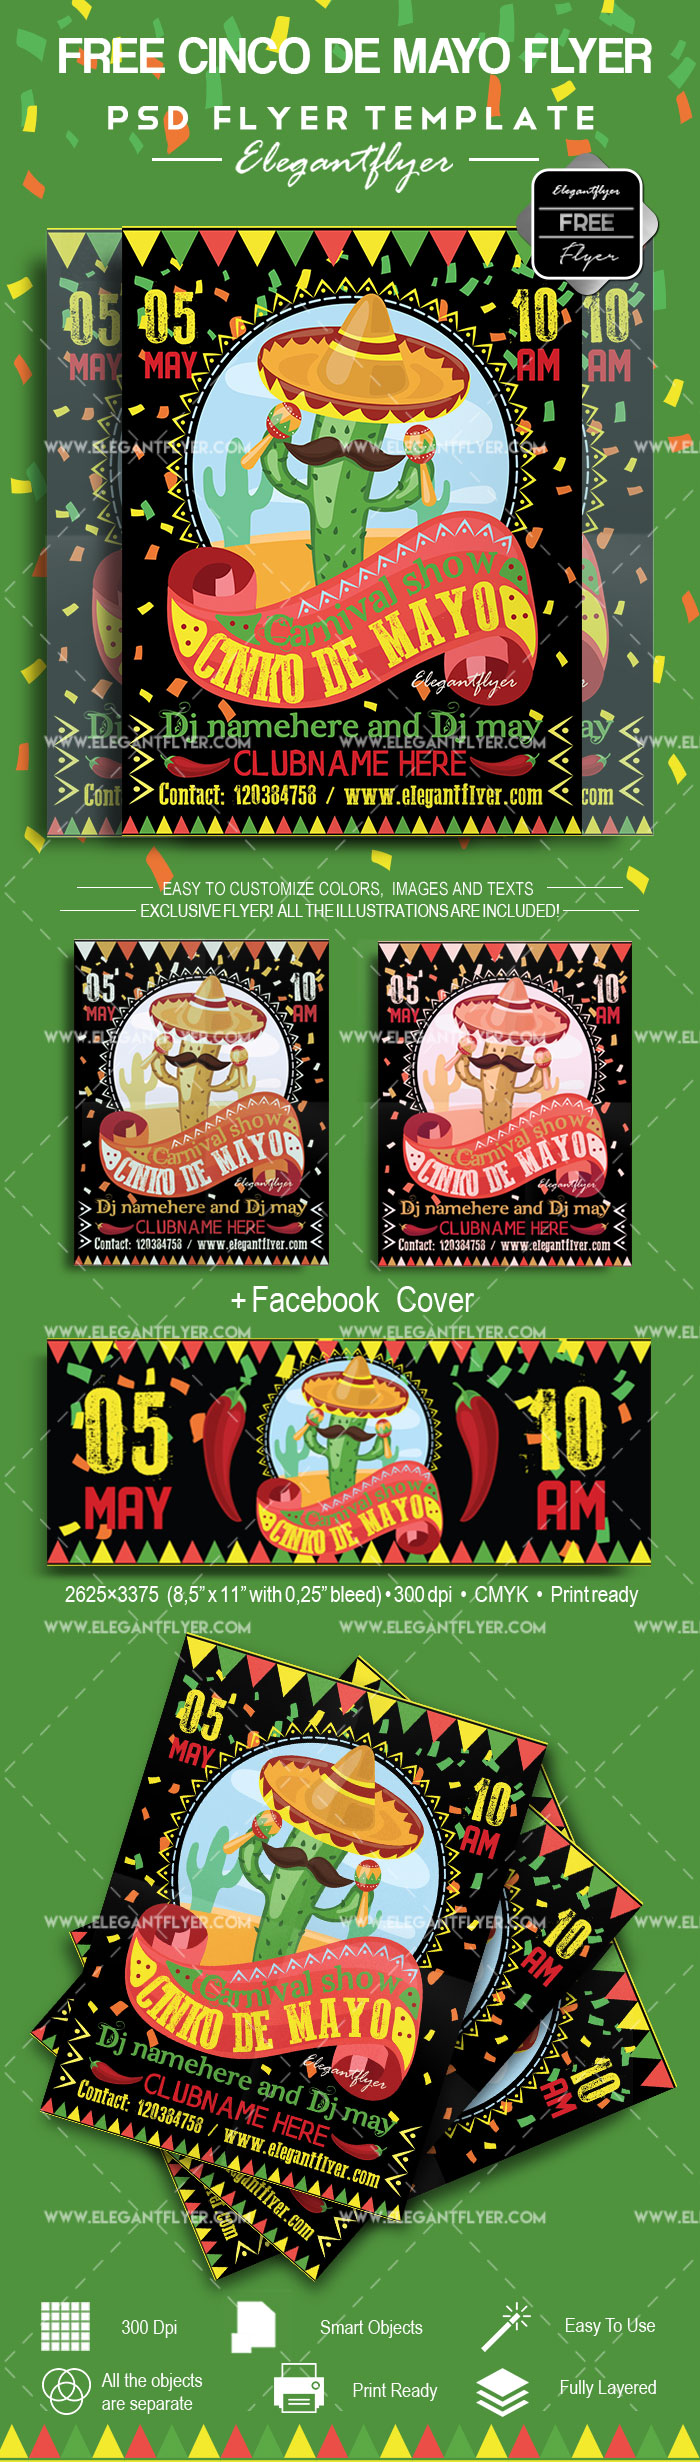 Free Cinco de Mayo Flyer